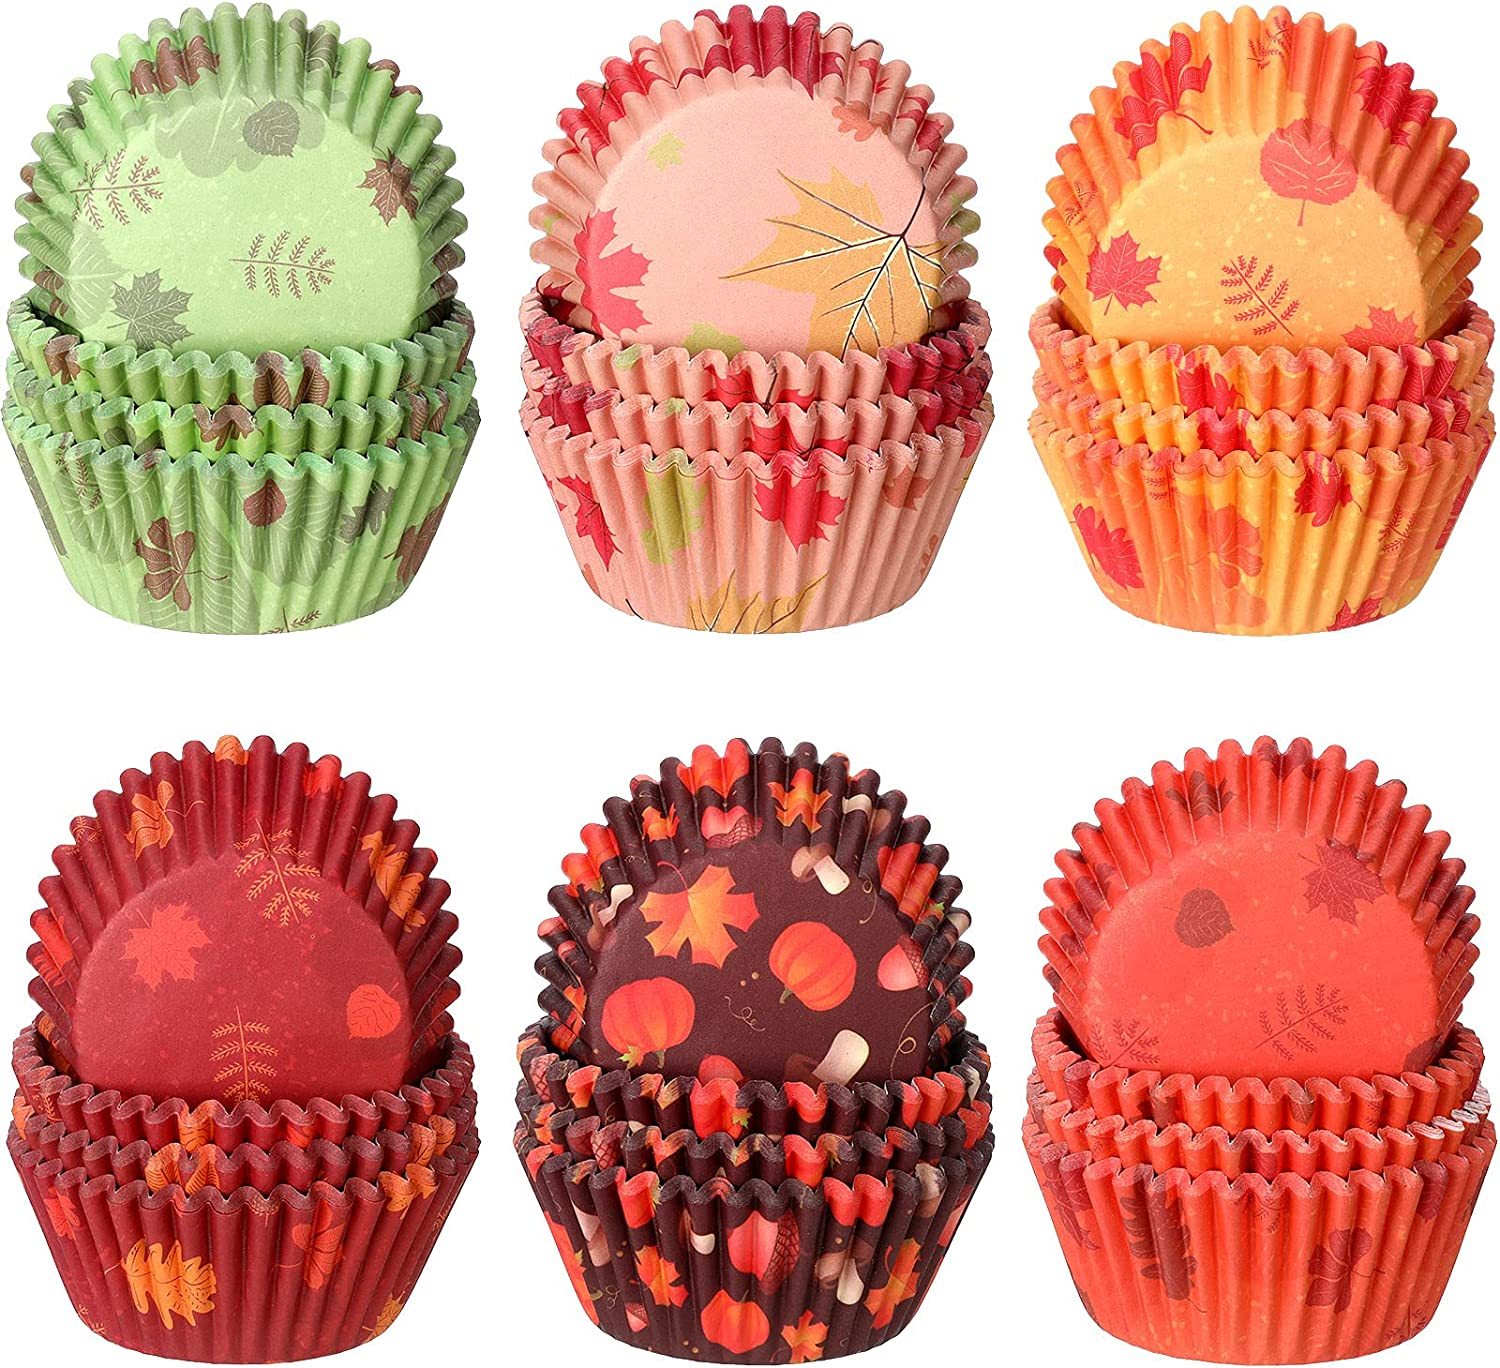 600 Pieces Thanksgiving Cupcake Liners Pumpkin Maple Leaf Cupcake Baking Cups Autumn Thanksgiving Muffin Liners Paper Baking Cups for Home Baking Fall Themed Liners Party Supplies (Classic Styles)